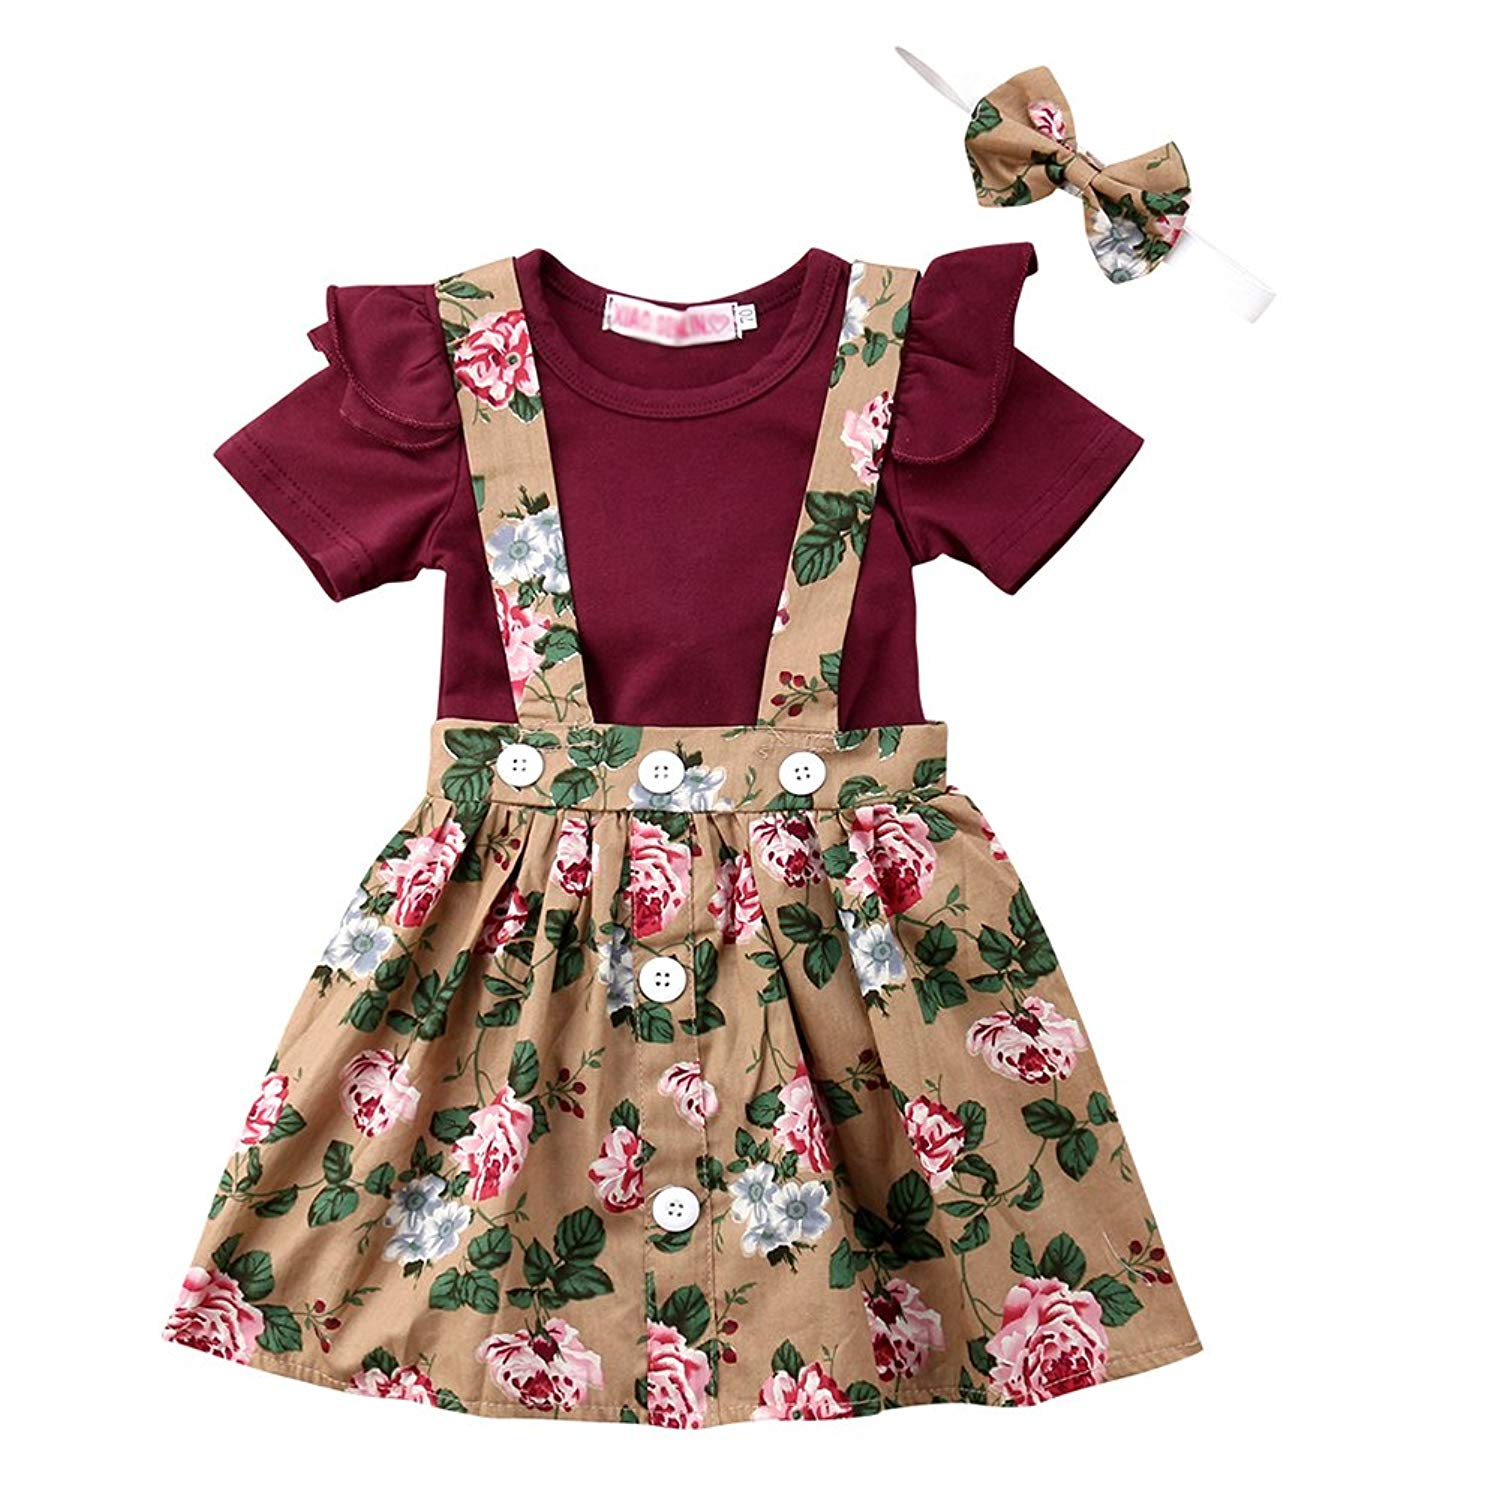 ddfc2256502 Get Quotations · Toddler Baby Gril Newborn Short Fly Sleeves Romper Floral  Jumpsuit Strap Overall Dress Bowknot Headband Set